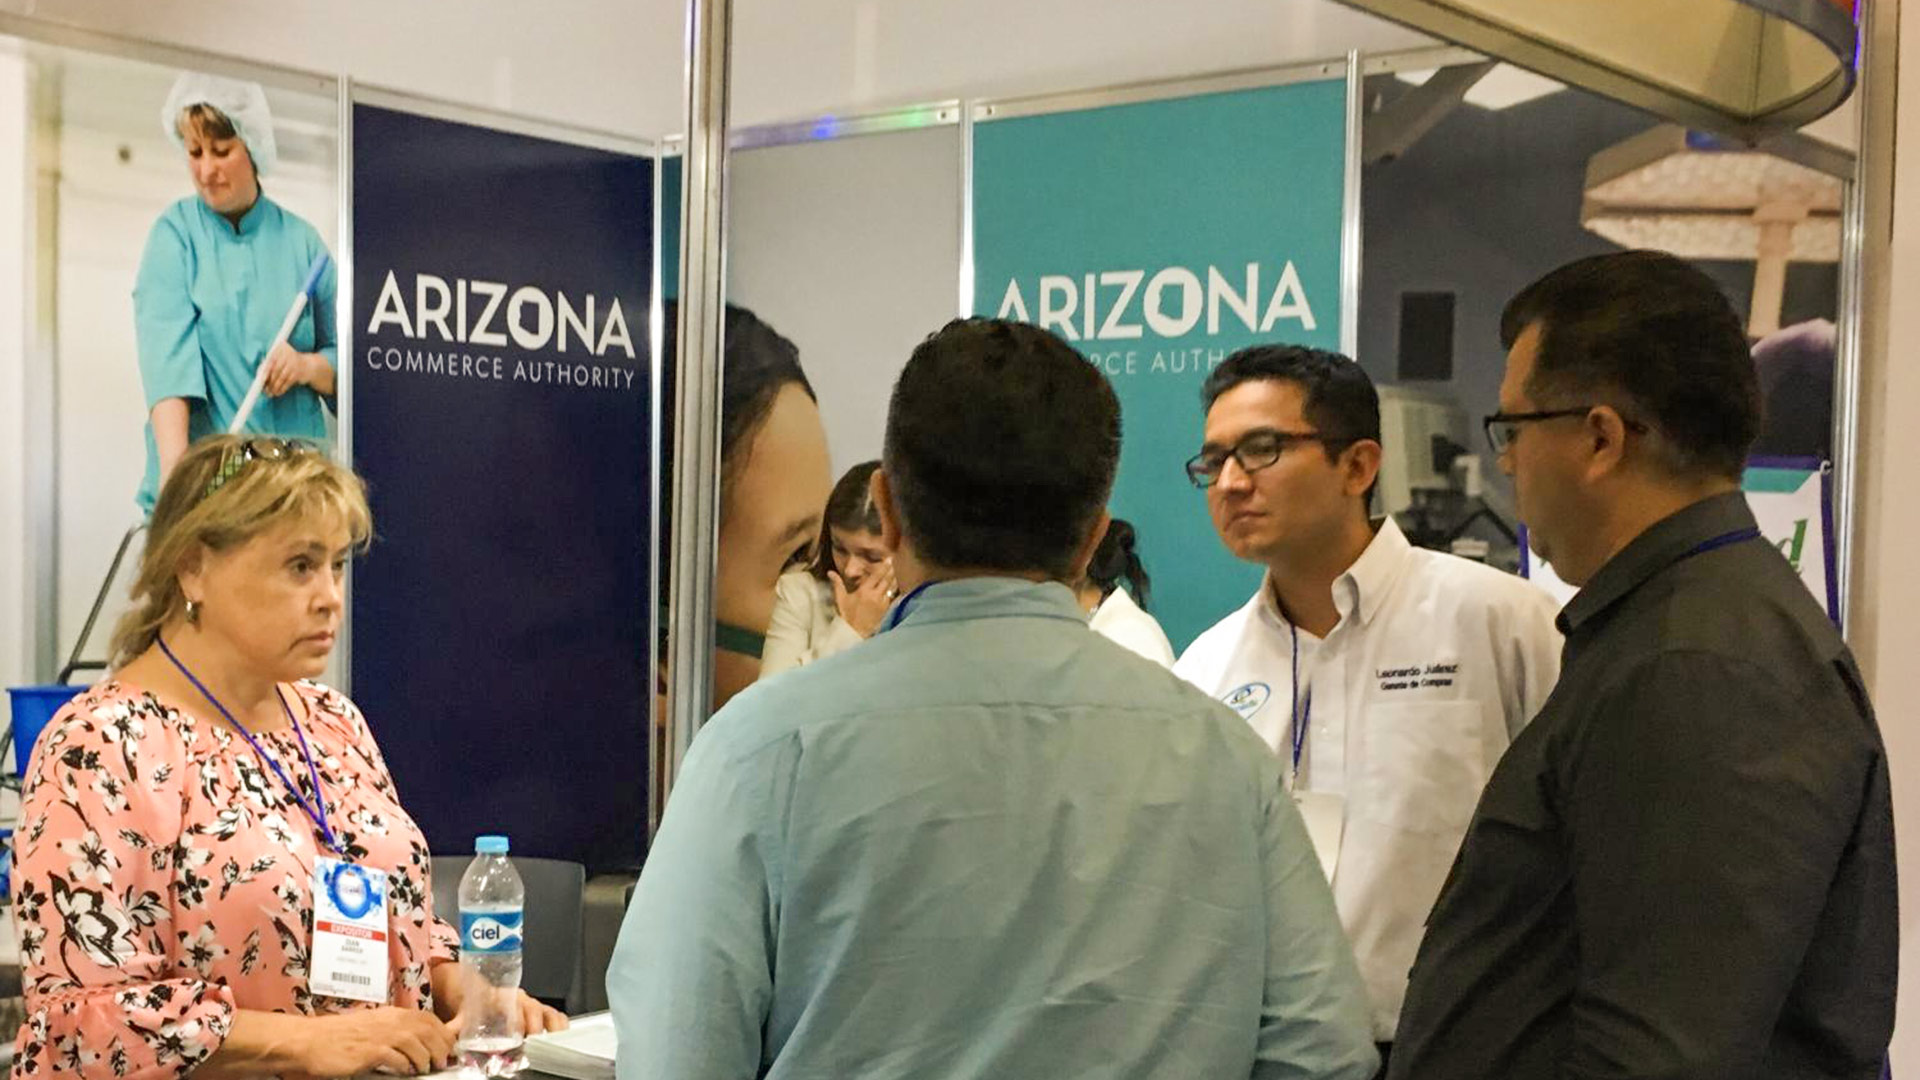 Diane Barker, left, of the Tucson-based medical manufacturer WestMed speaking with a representative from a distribution company and prospective clients at the ExpoMed medical device fair in Mexico City.